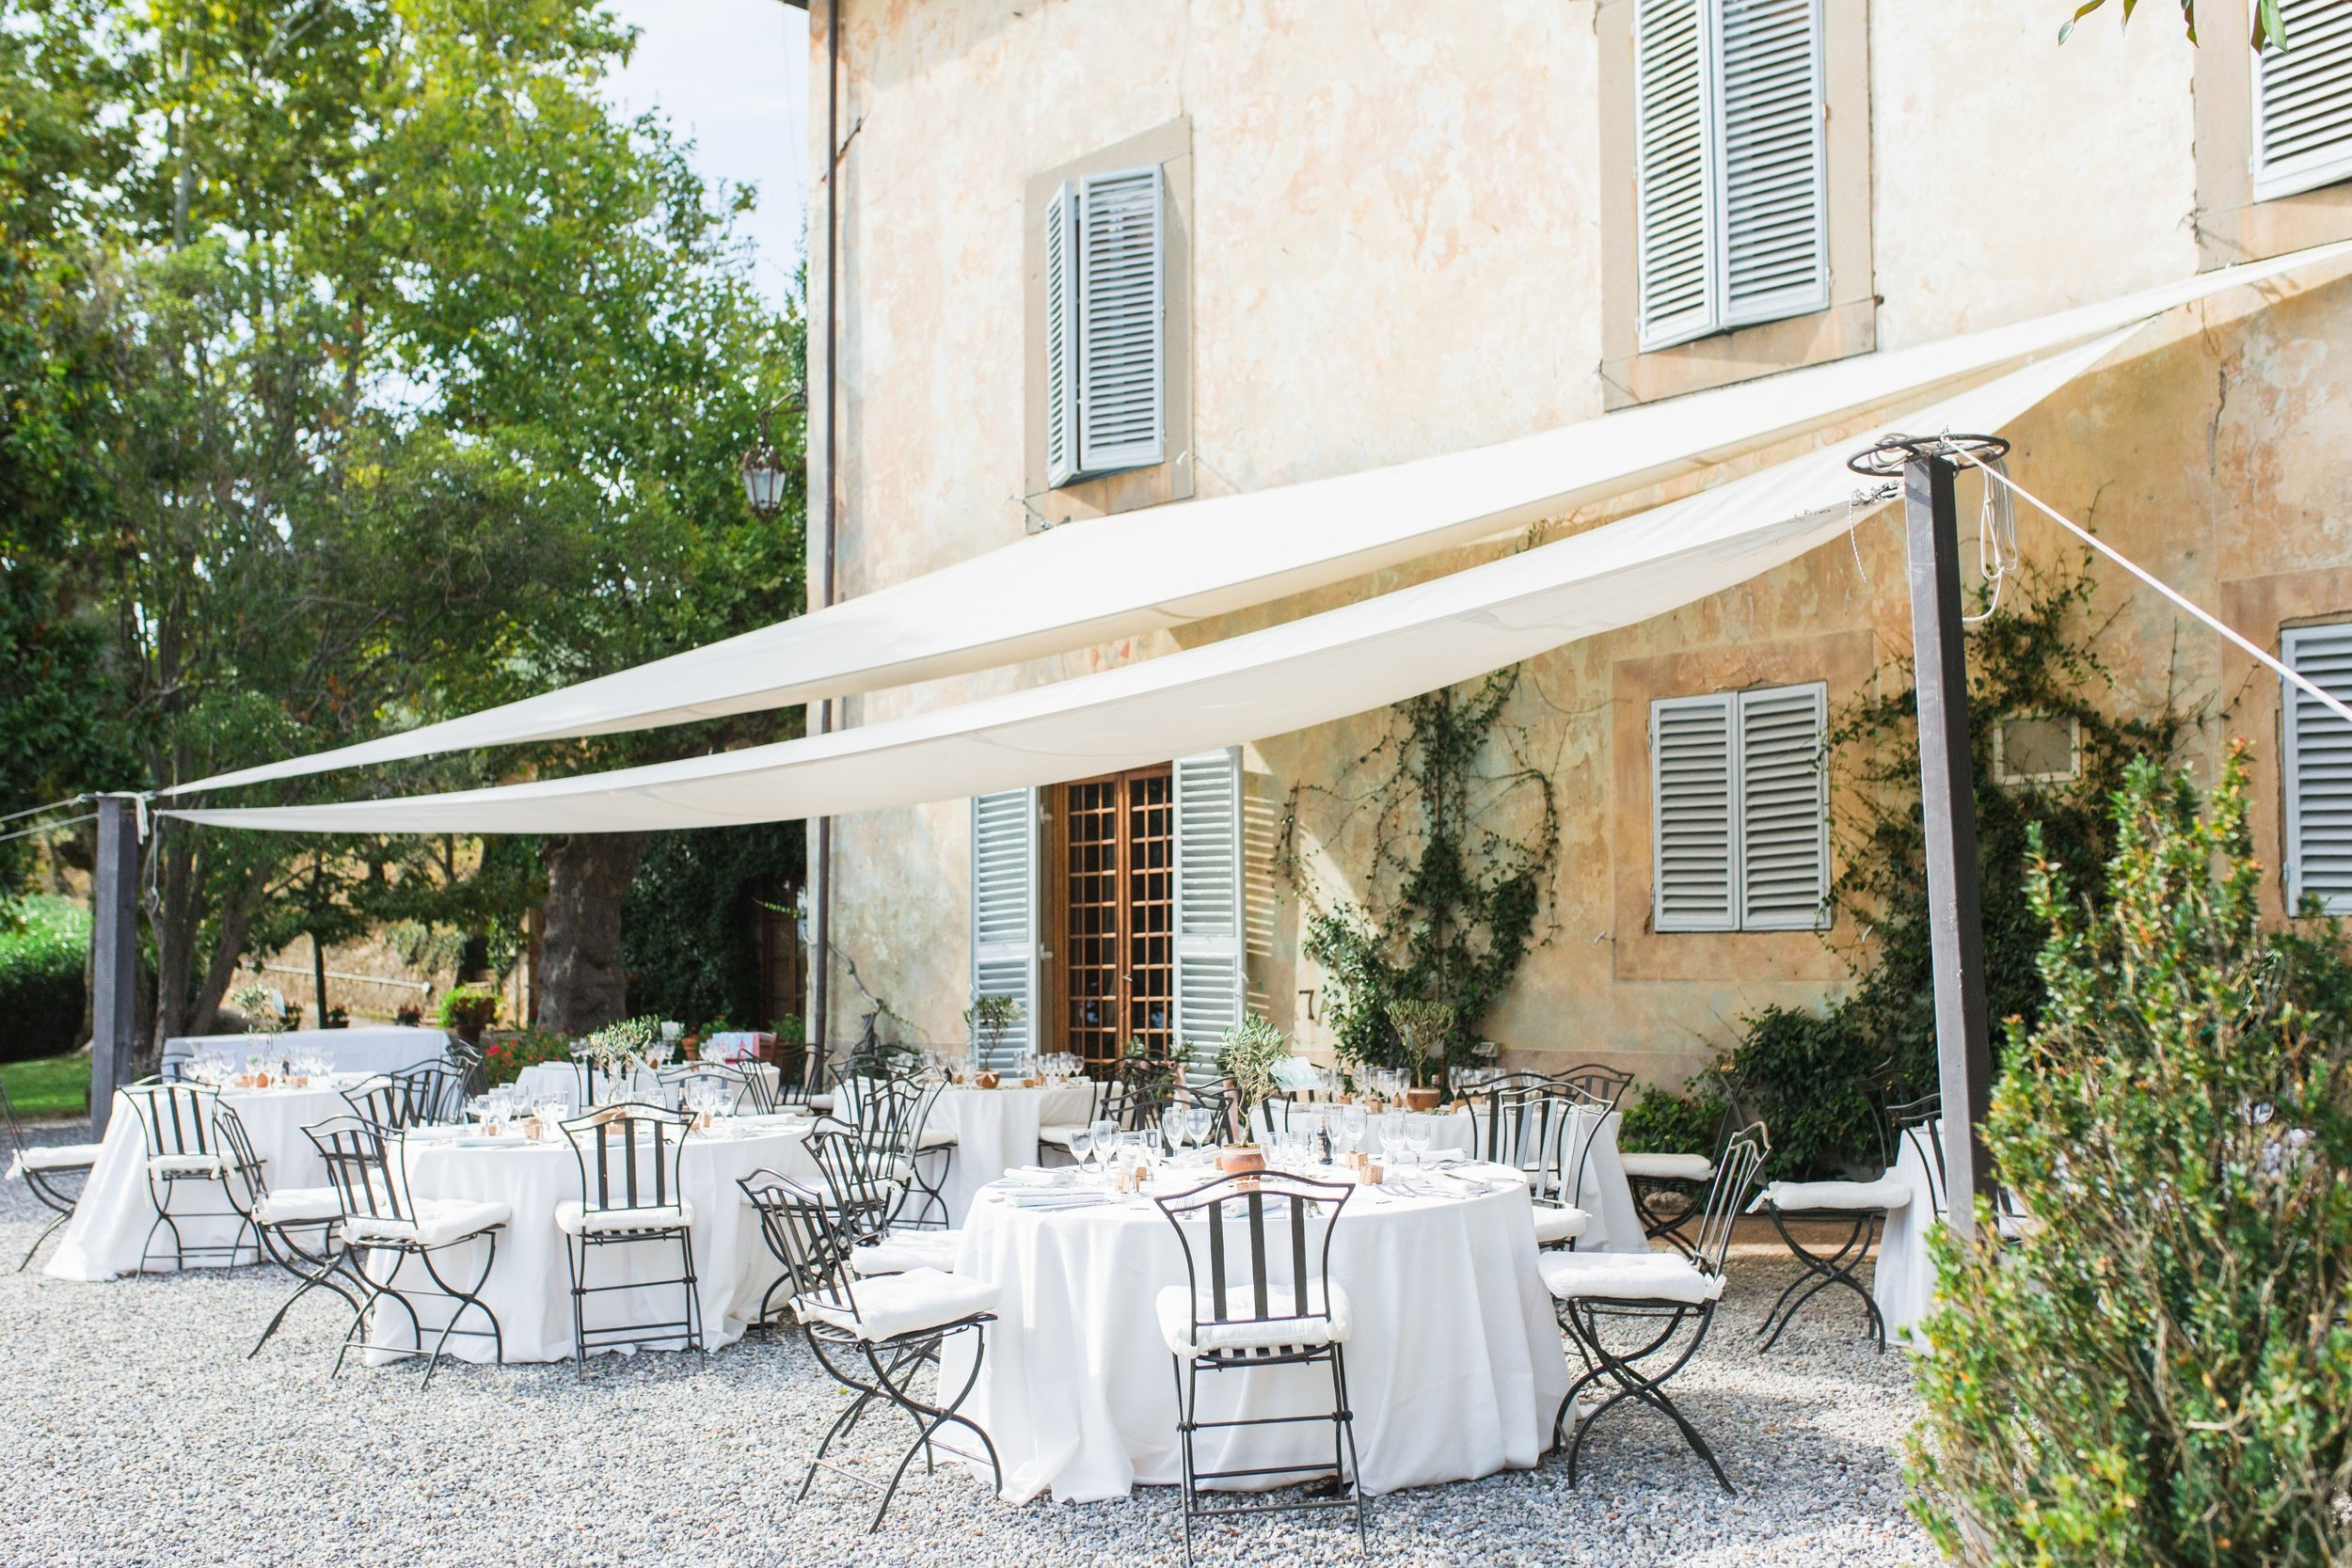 Fattoria Mansi Bernardini, Lucca - A large estate of villas and apartments which sleeps 70-80 guests. A civil ceremony can be held within the grounds.Read More...